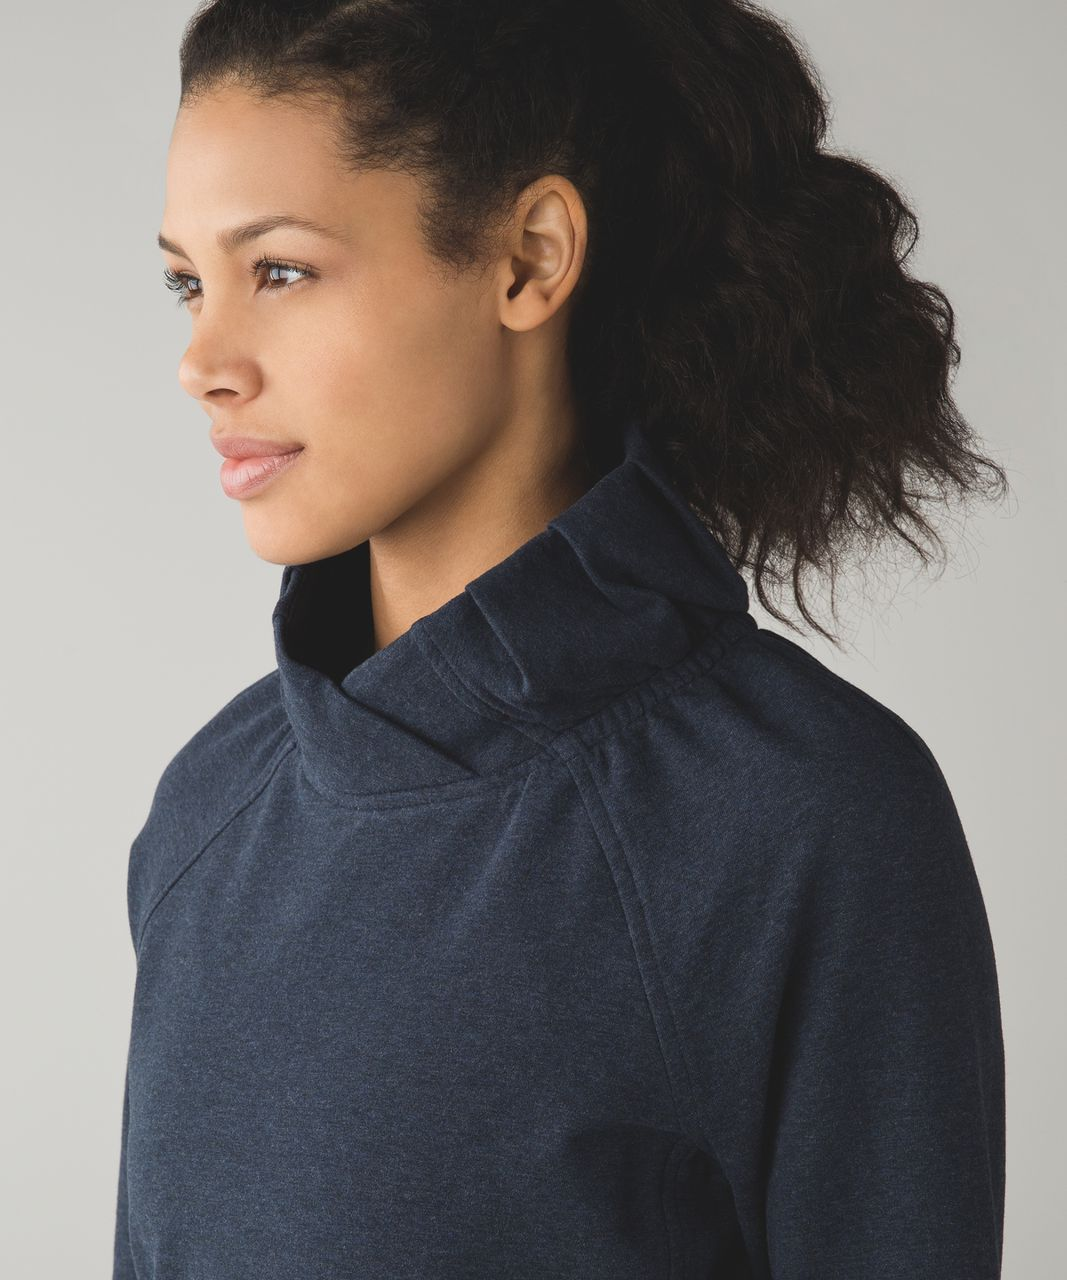 Lululemon After All Pullover - Heathered Naval Blue